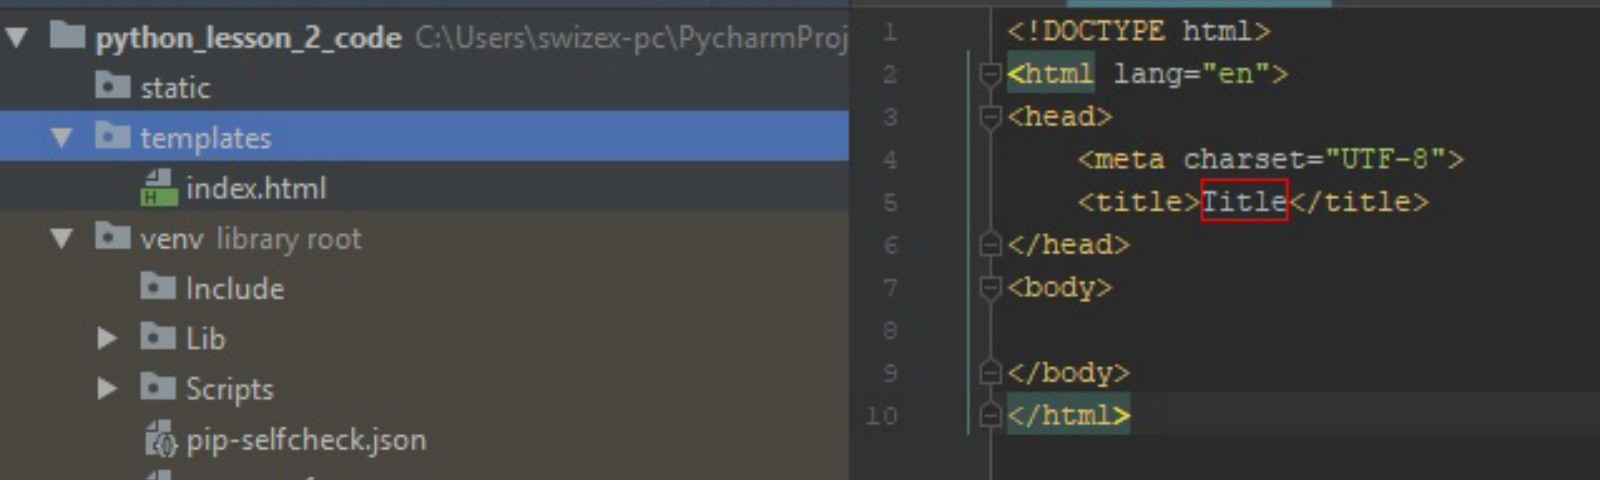 Python lesson — Setting up a Flask Website (Pycharm) Part 1